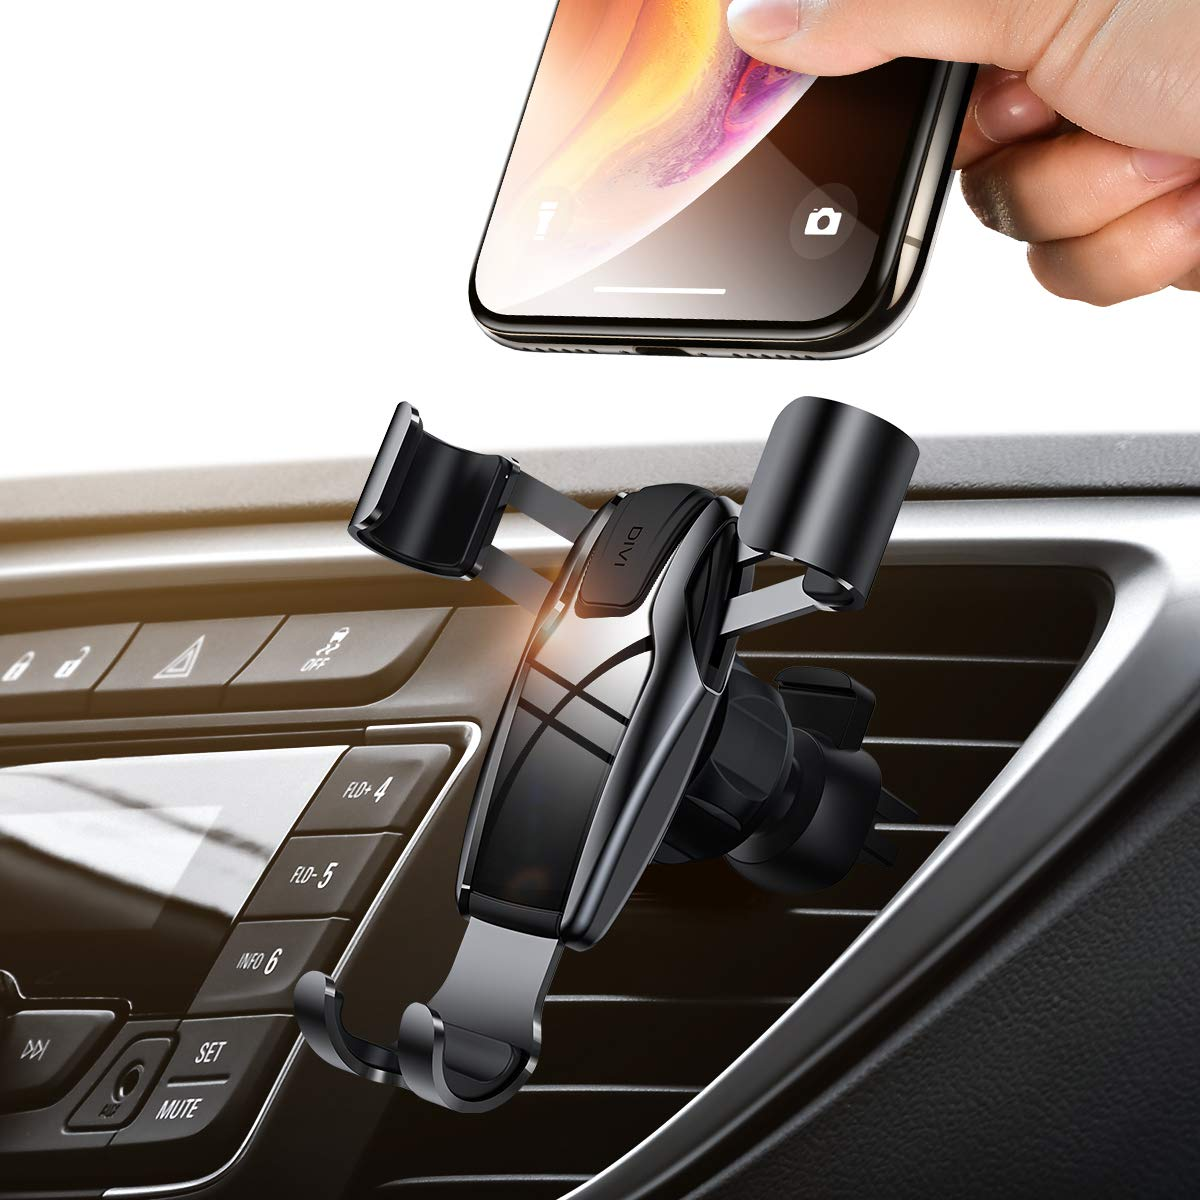 AINOPE Cell Phone Holder for Car, Gravity Car Phone Mount Auto-Clamping Air Vent Car Phone Holder Universal Car Phone Mount Compatible iPhone Xs MAX/X/XR/8/7, Galaxy Note 9/S10 Plus/S9 - Silver by AINOPE